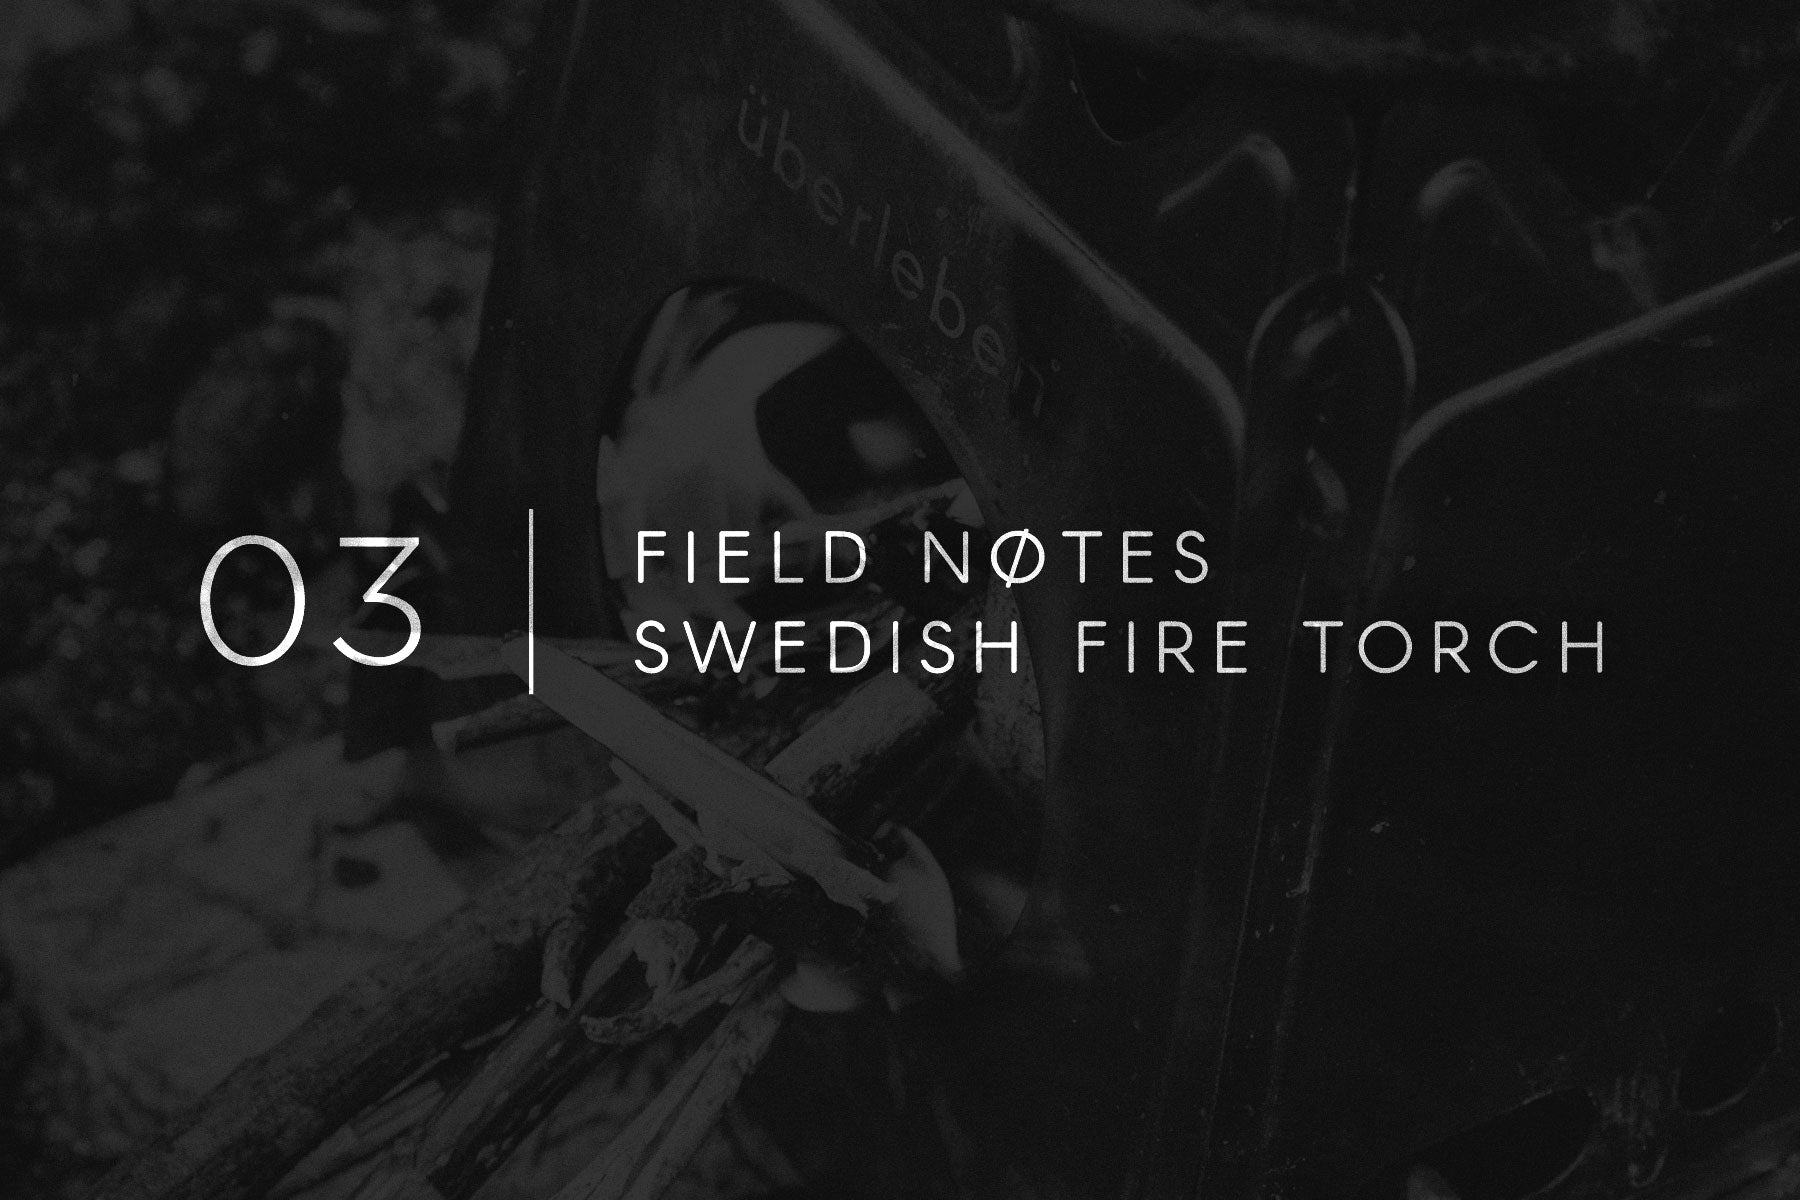 Field Notes 03 - Swedish Fire Torch